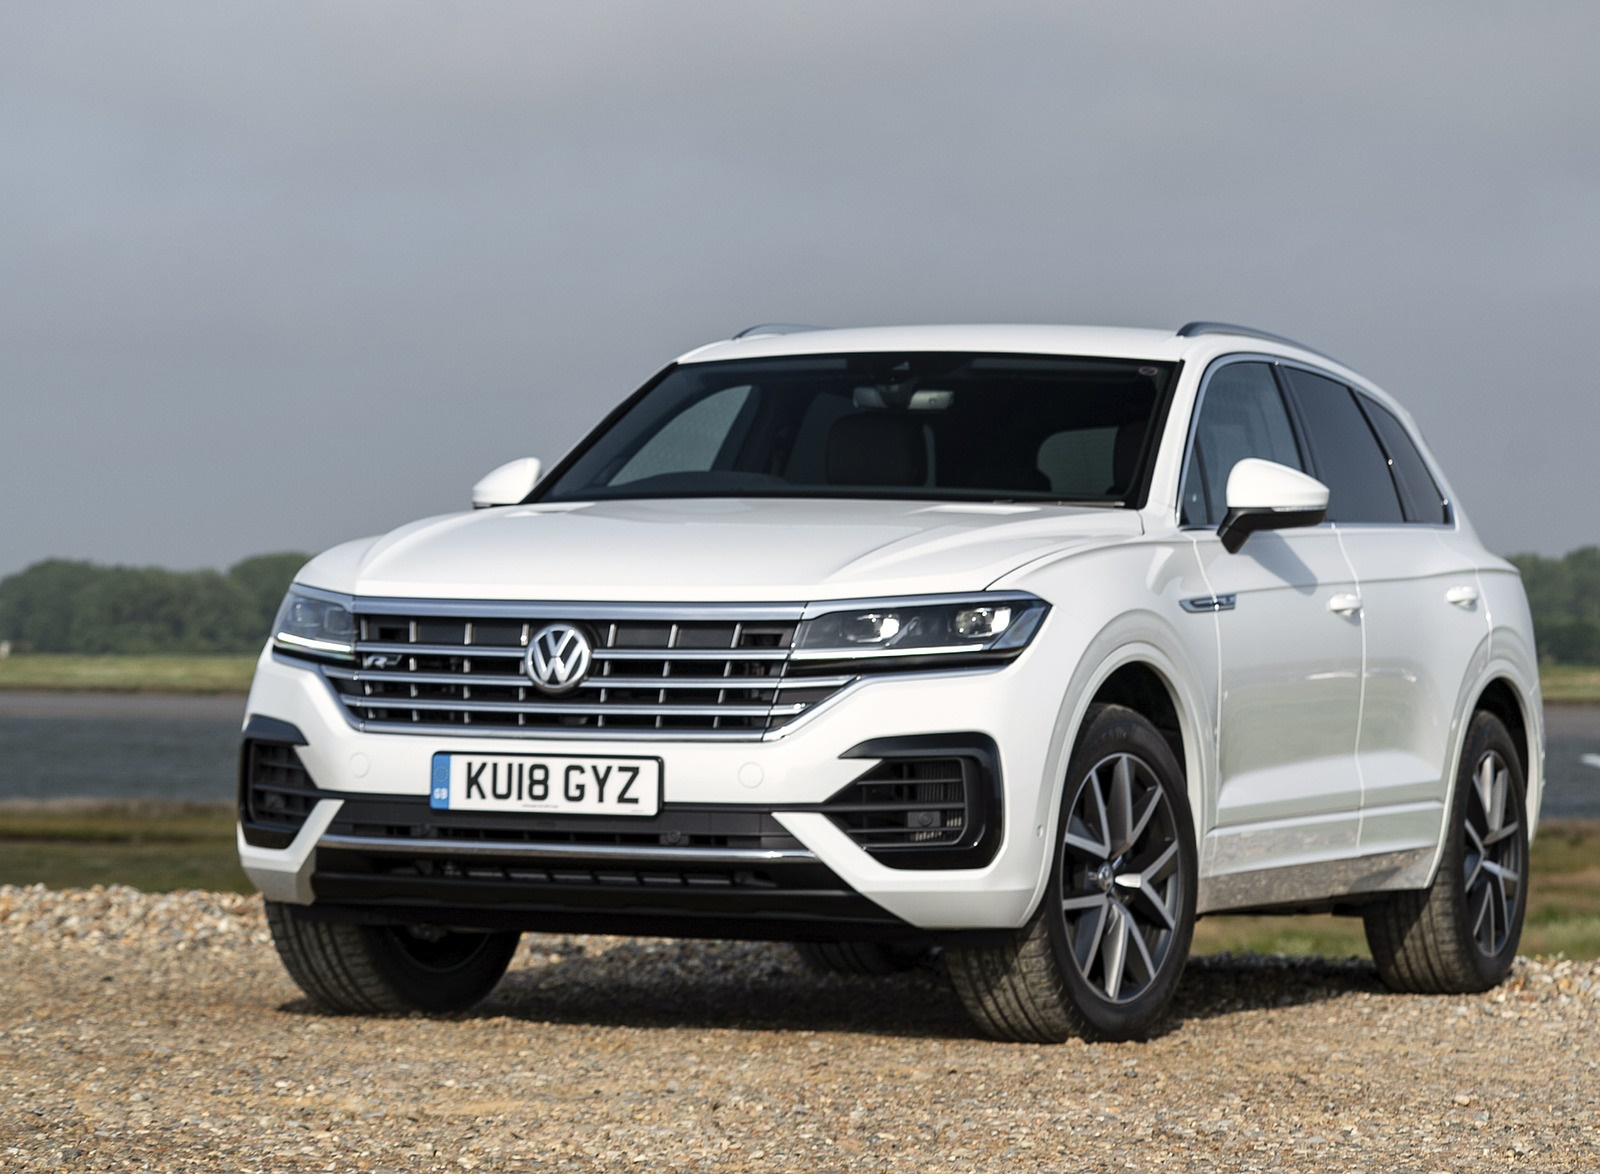 2019 Volkswagen Touareg V6 TDI R-Line (UK-Spec) Front Three-Quarter Wallpapers (6)